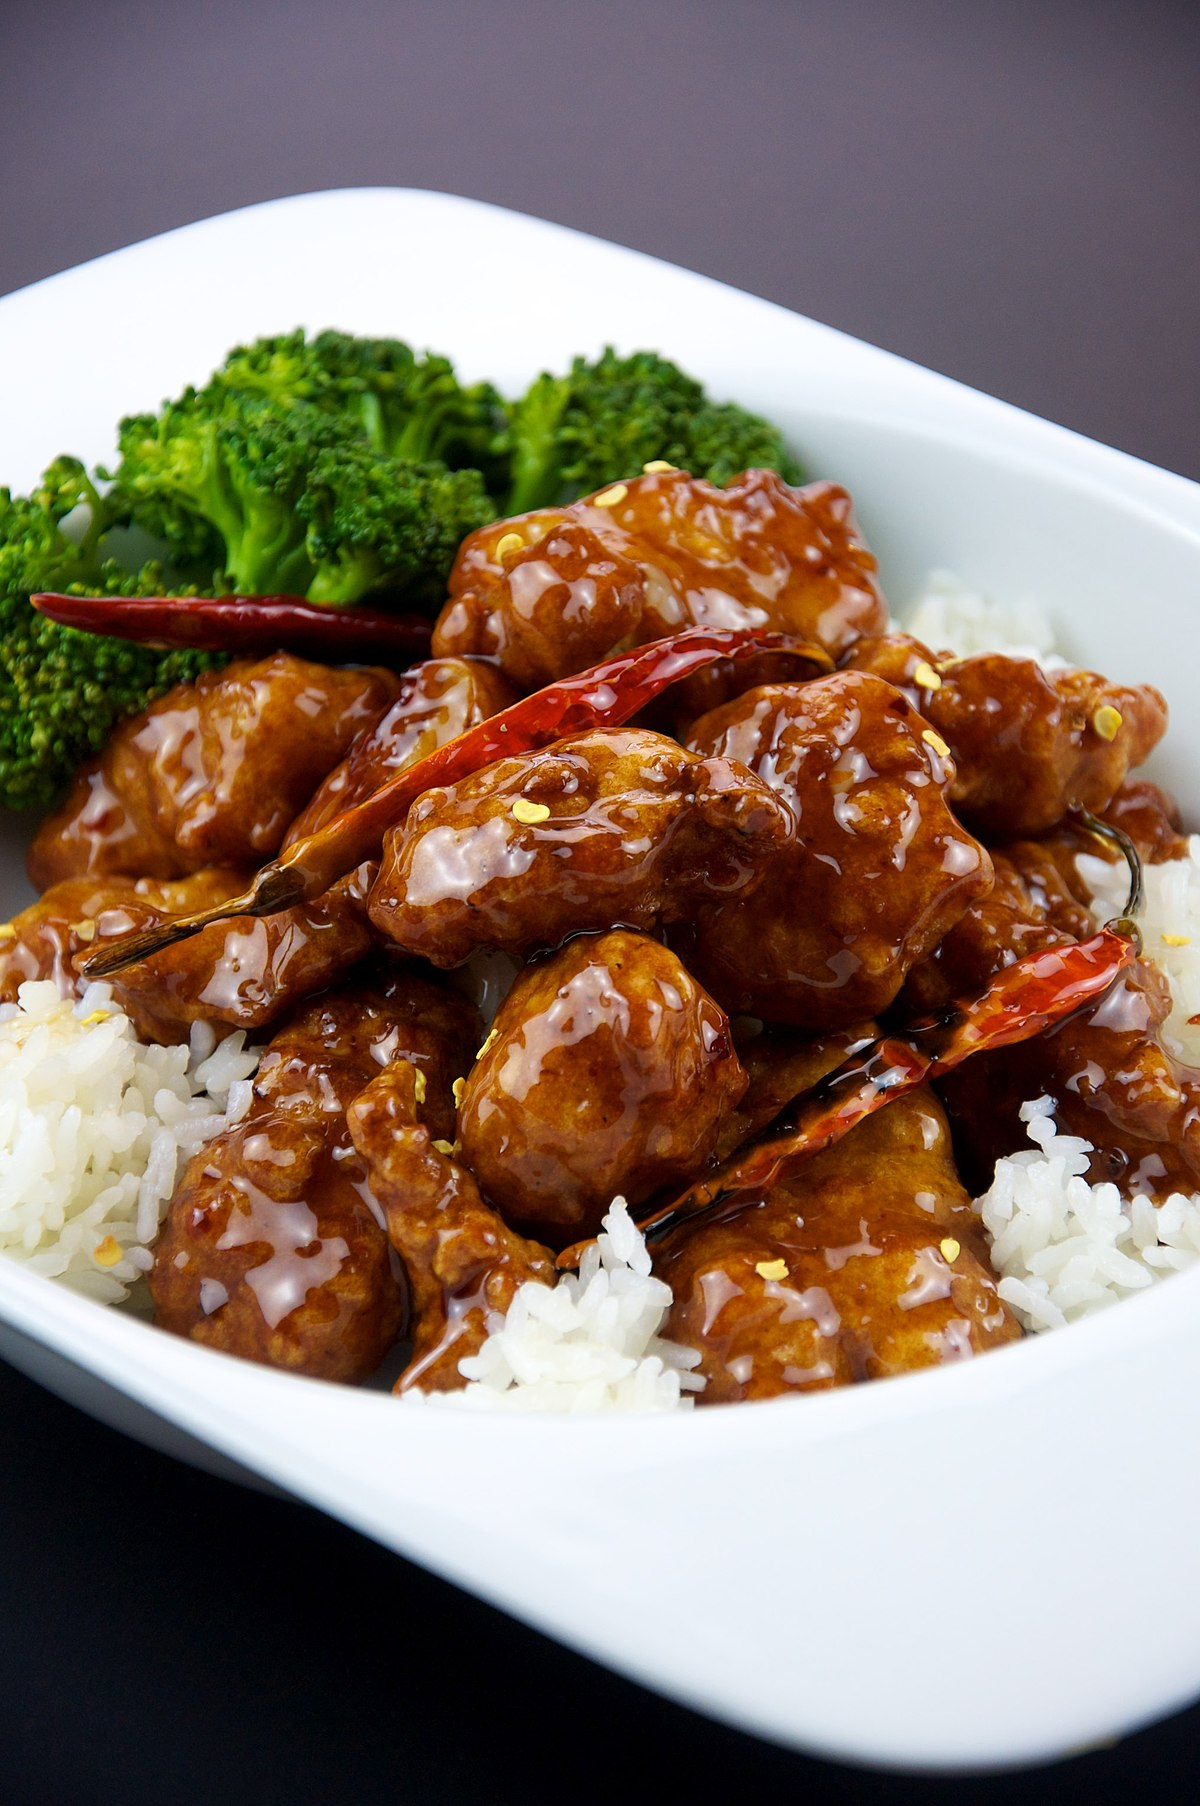 General Tso's chicken - Wiktionary